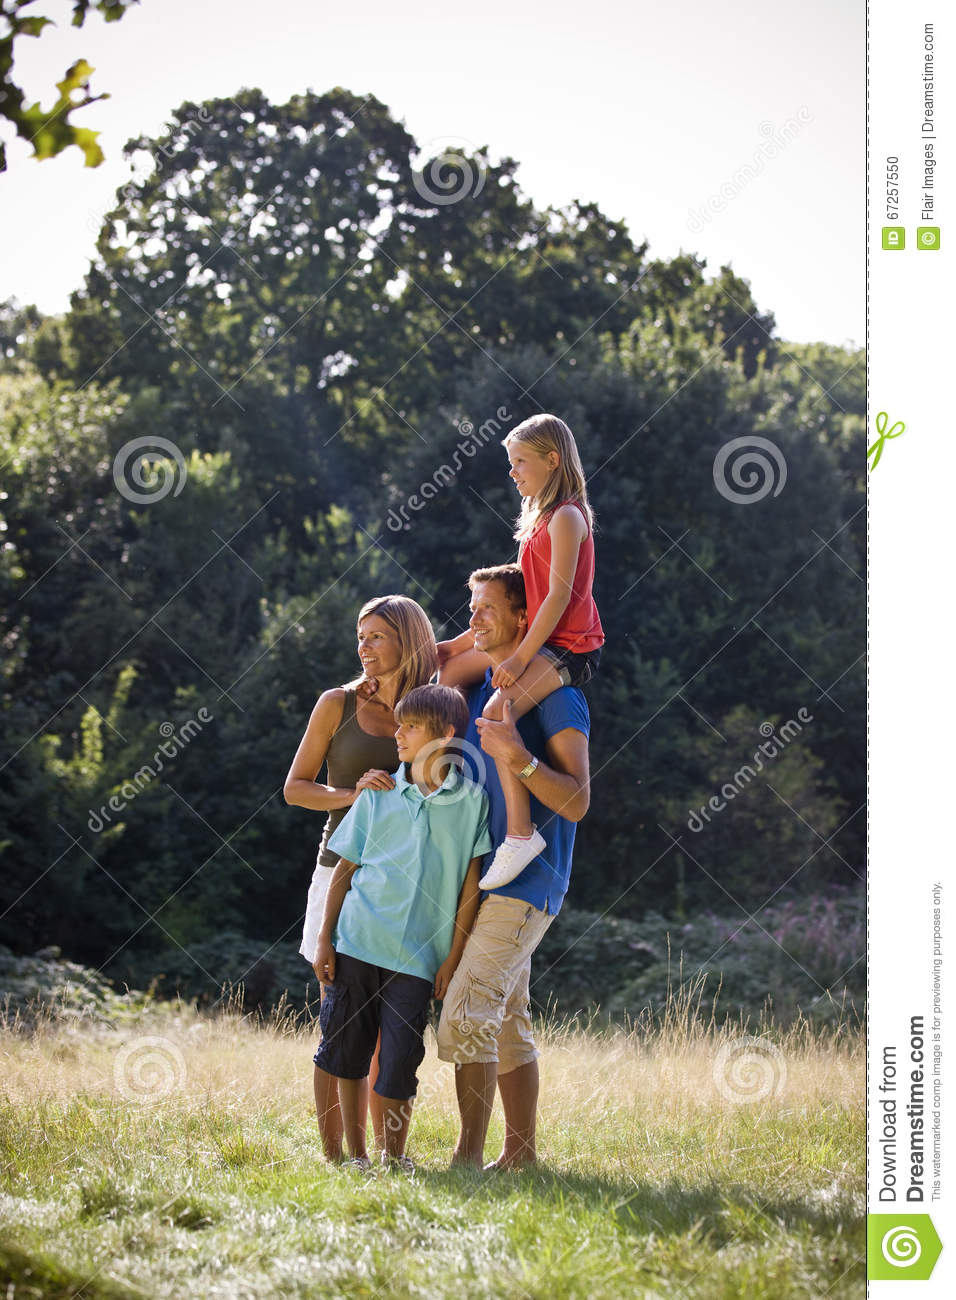 A family standing in a park, father carrying his daughter on his shoulders